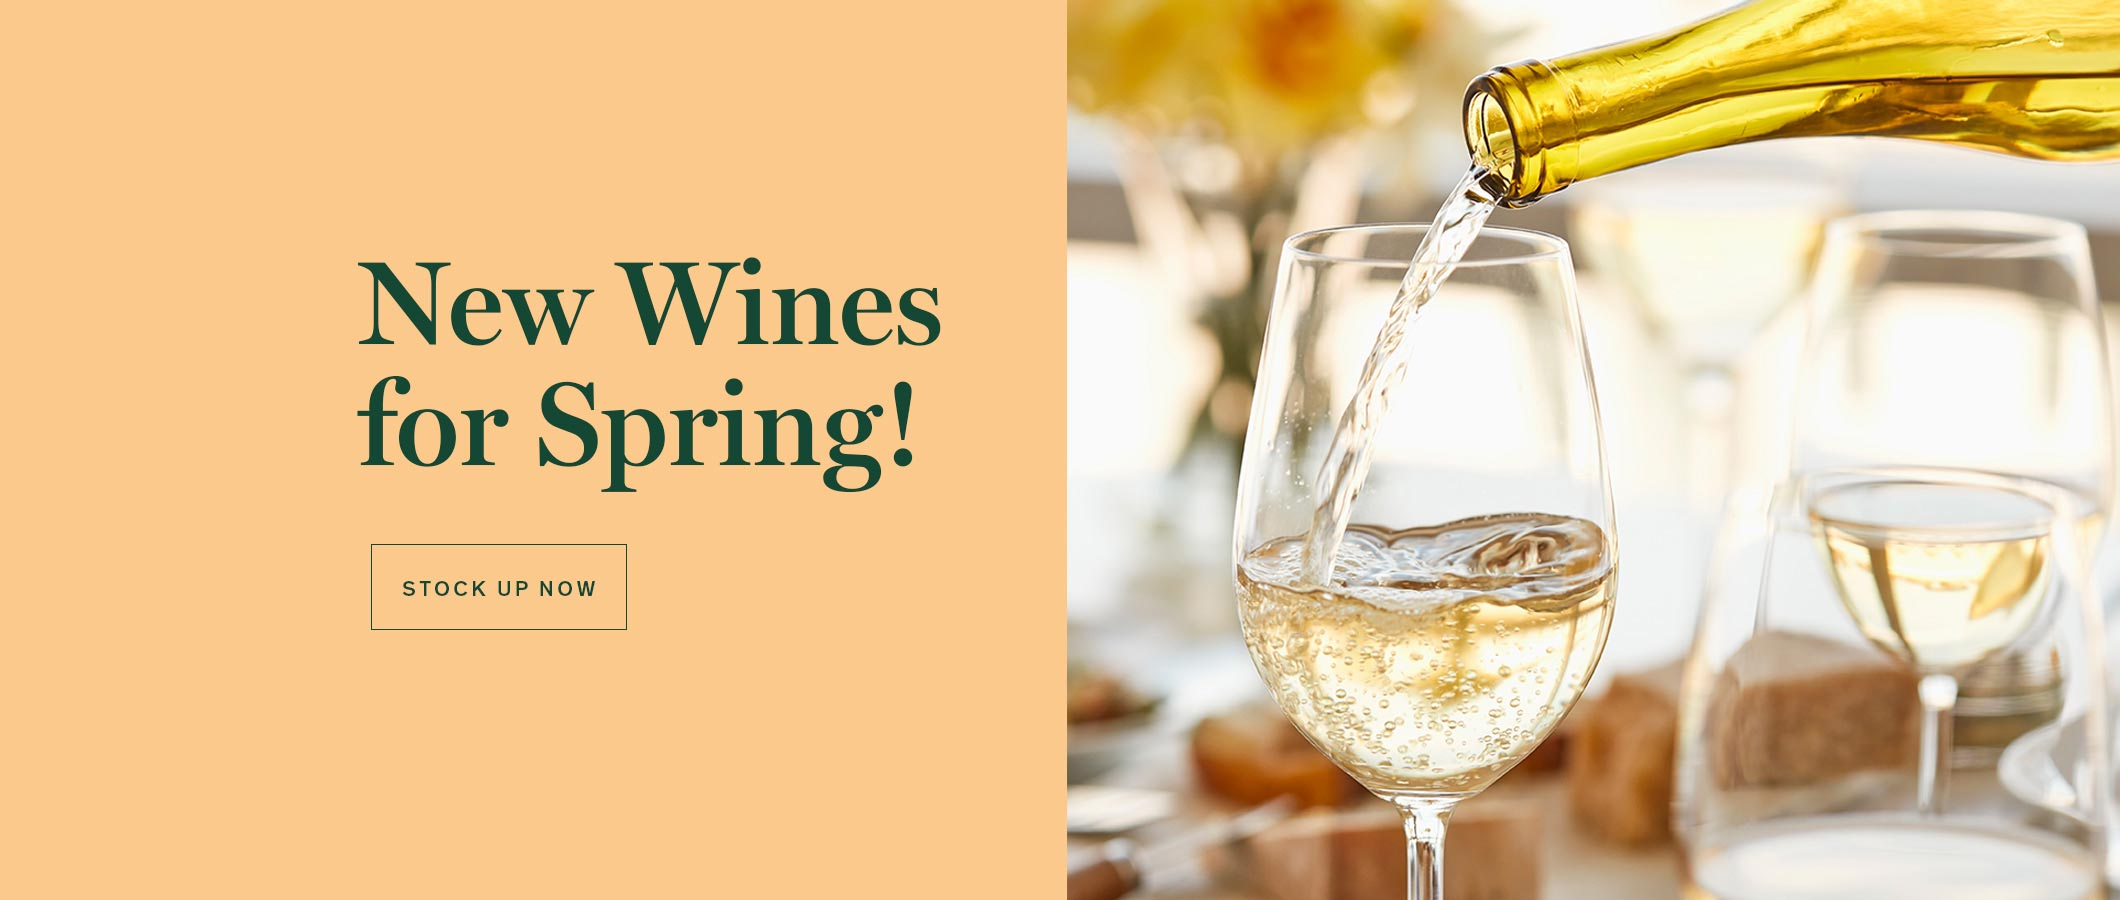 New Wines for Spring!   STOCK UP NOW